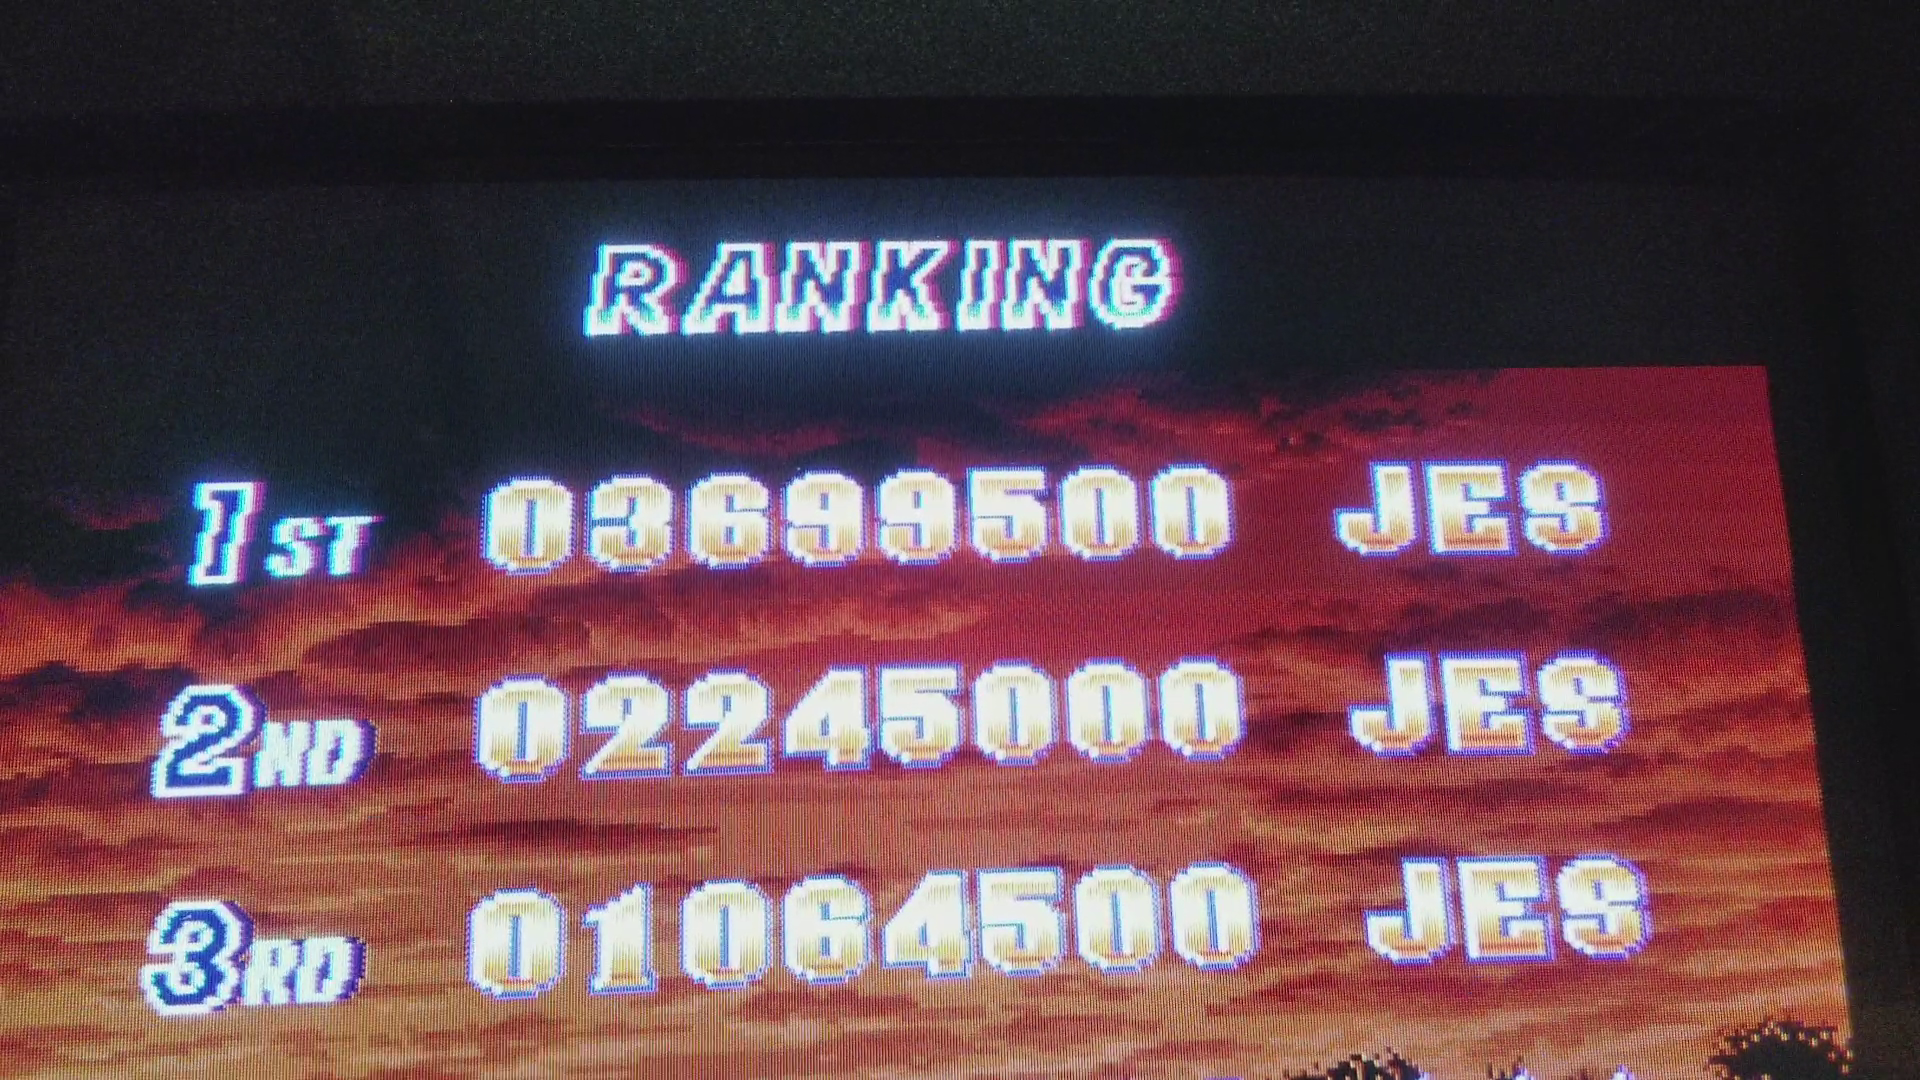 JES: Shock Troopers [shocktro] (Arcade Emulated / M.A.M.E.) 3,699,500 points on 2017-08-25 11:46:44